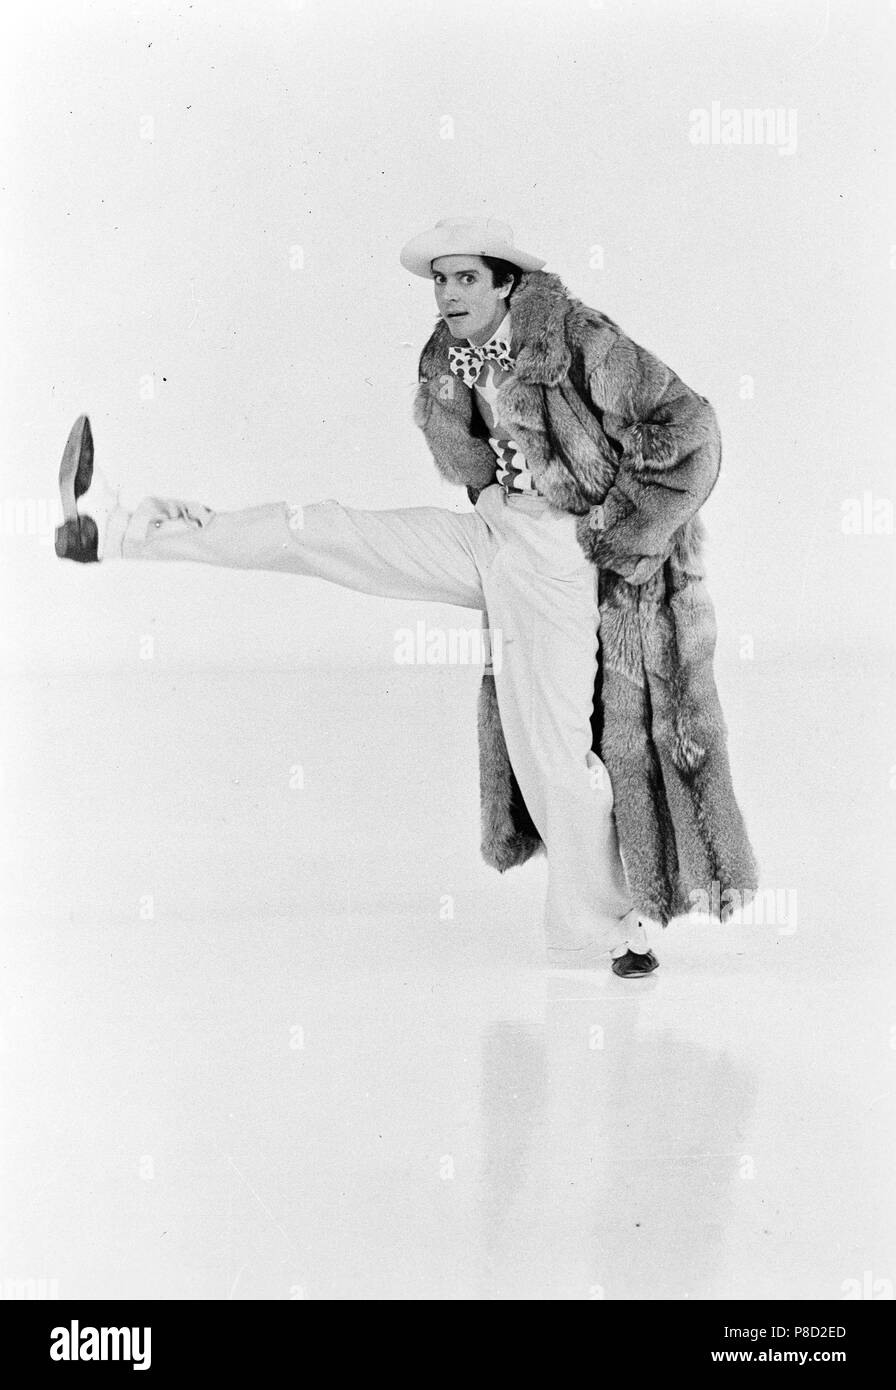 The Boyfriend (1971) Tommy Tune,     Date: 1971 - Stock Image